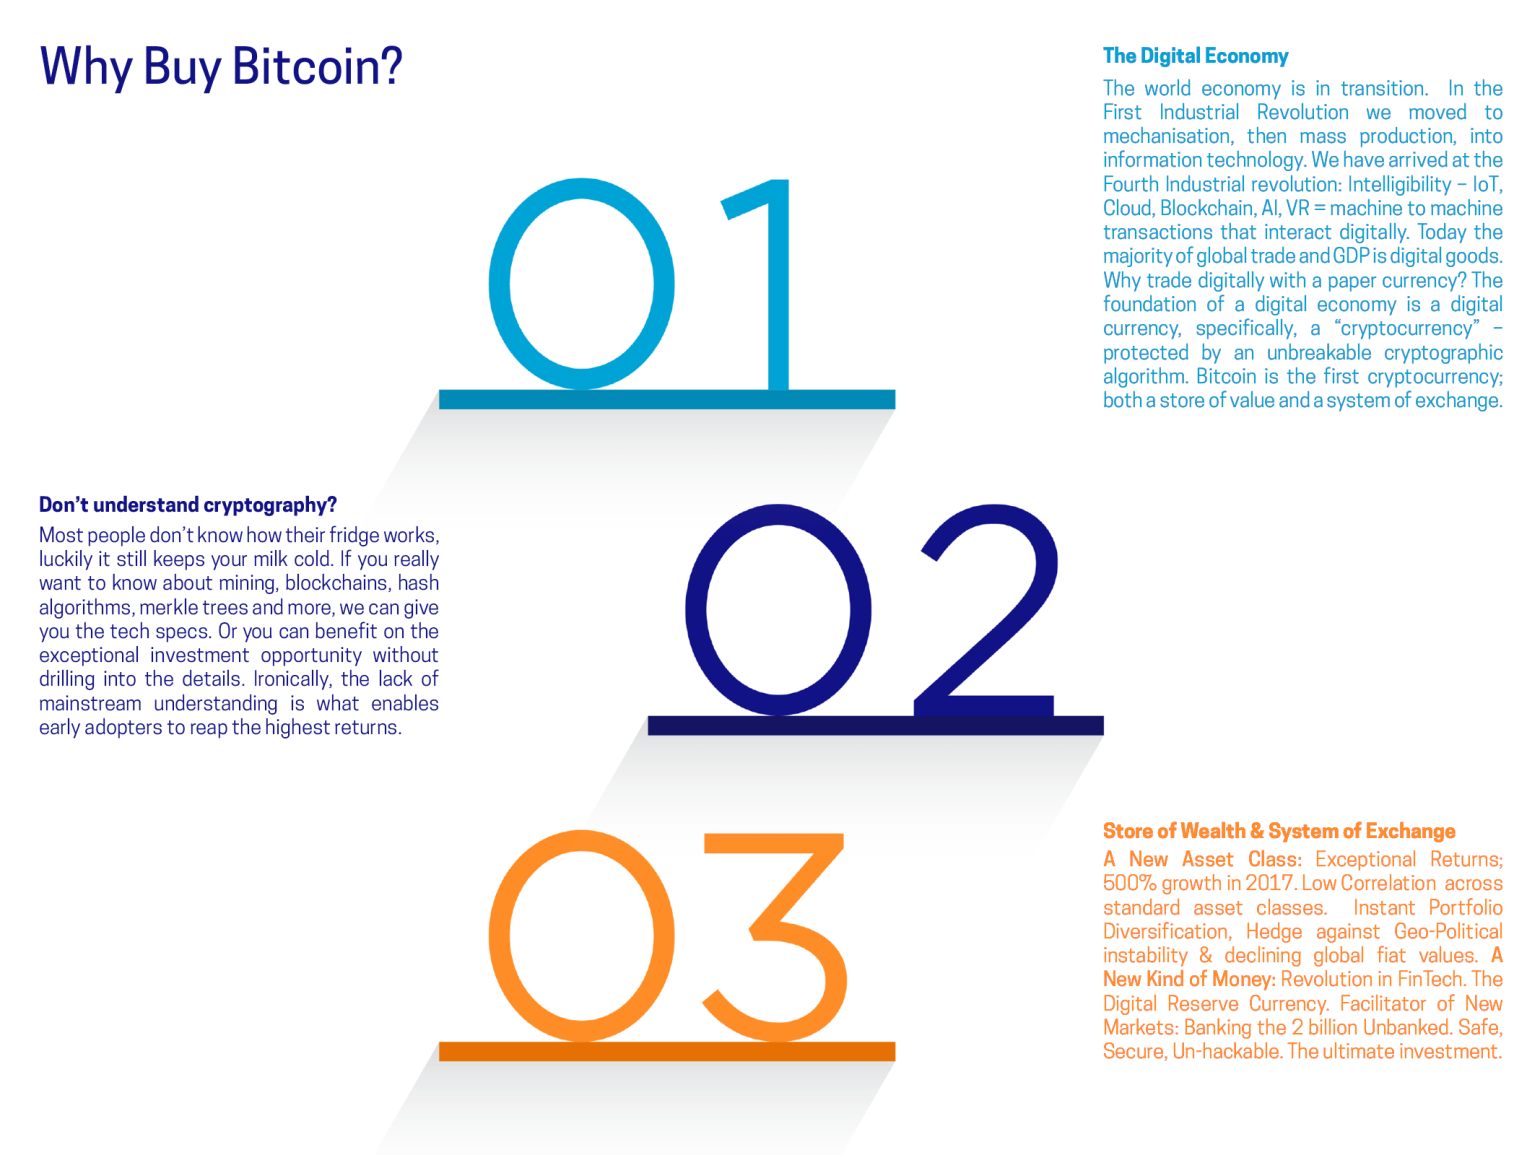 Why buy Bitcoin steps 1 2 3